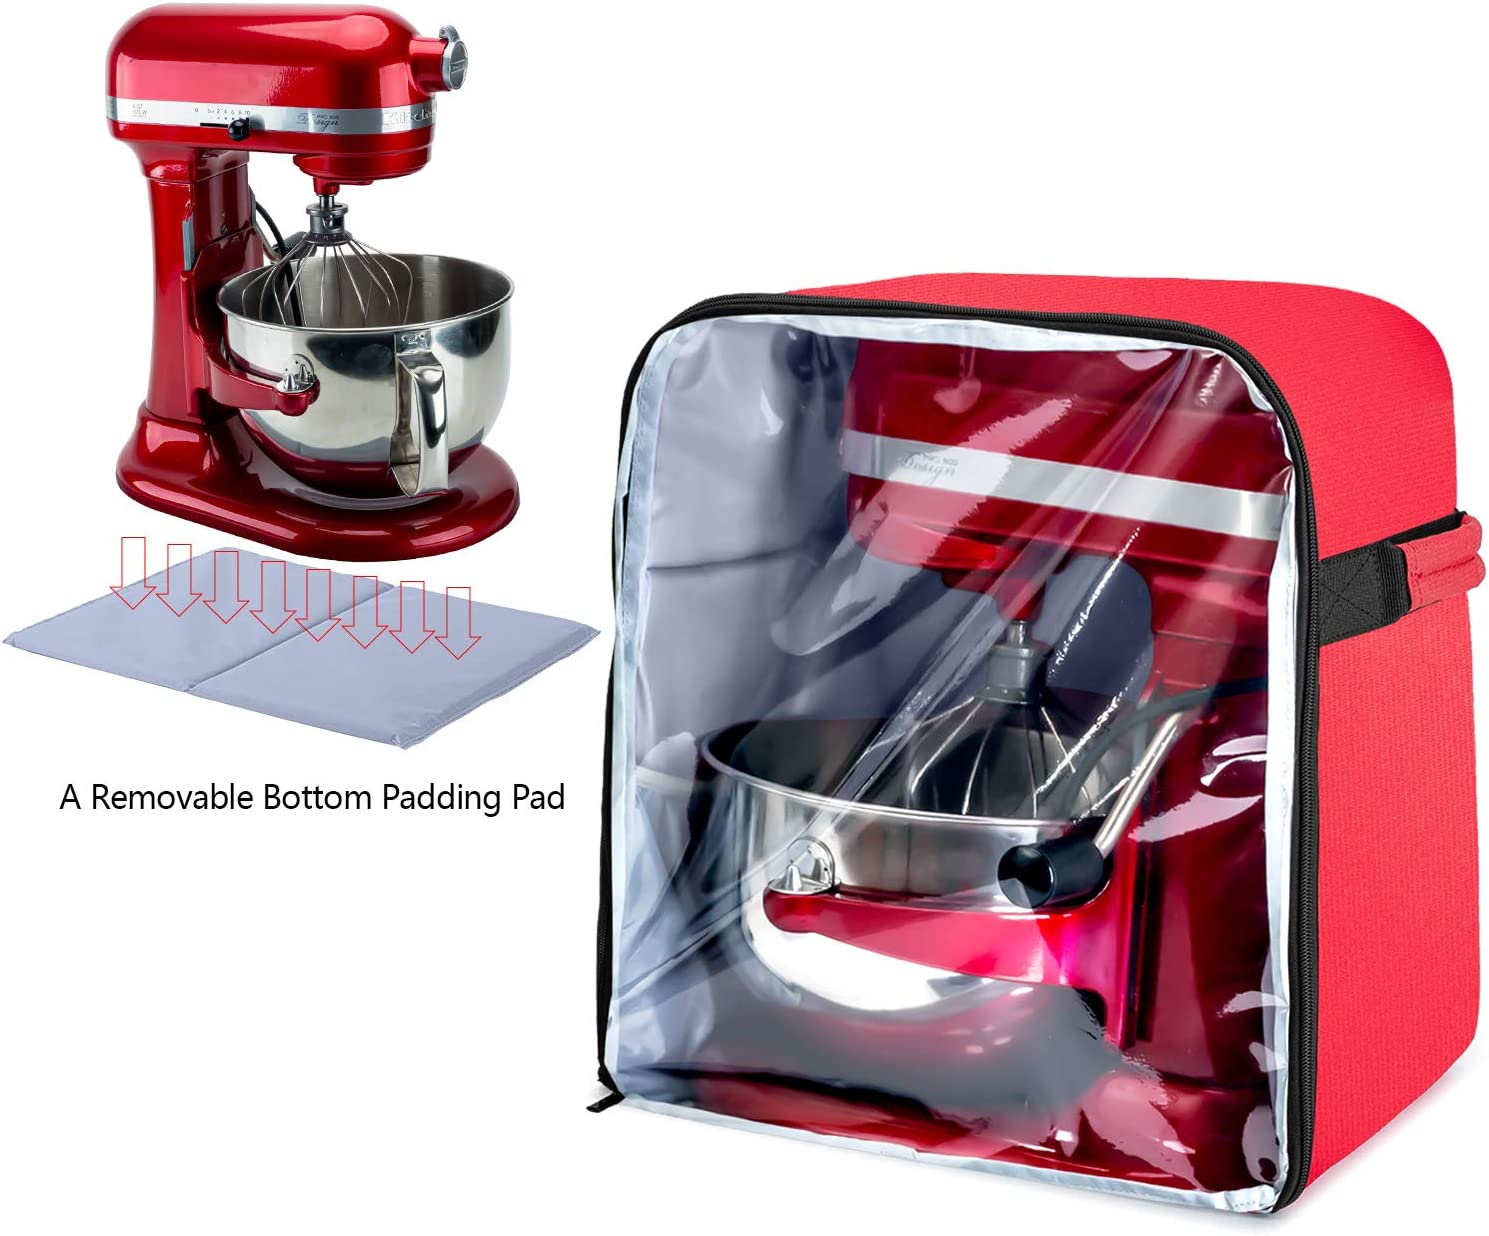 Luxja Dust Cover for 6-8 Quart KitchenAid Mixers (with a Bottom Padding Pad), Dust Cover (Clear Front Panel) for Stand Mixers and Extra Accessories, Red (Patent Pending)